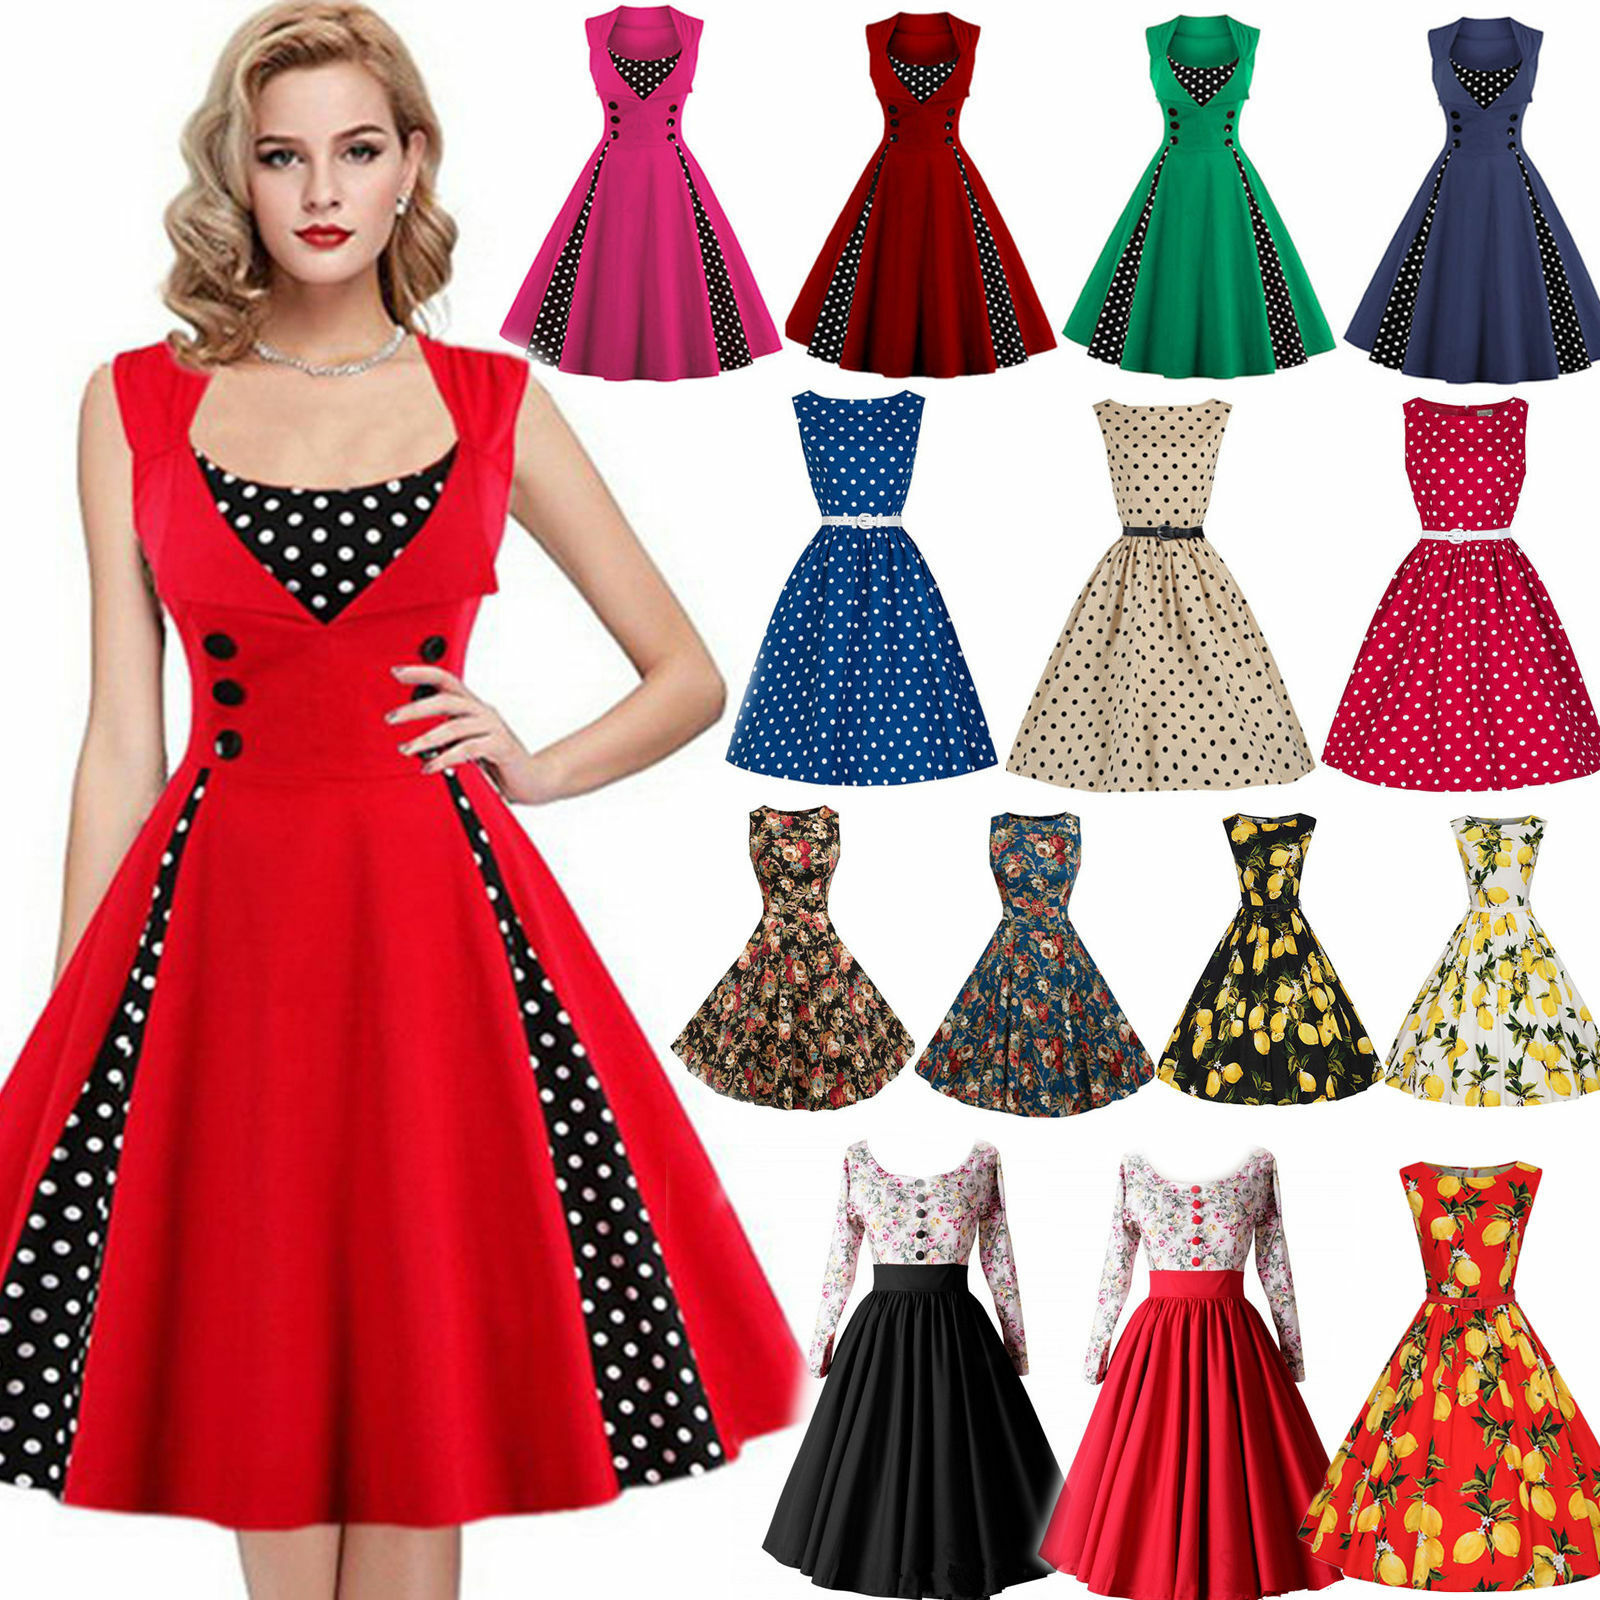 damen rockabilly 50er swing kleid petticoat vintage hepburn party cocktailkleid eur 3 49. Black Bedroom Furniture Sets. Home Design Ideas